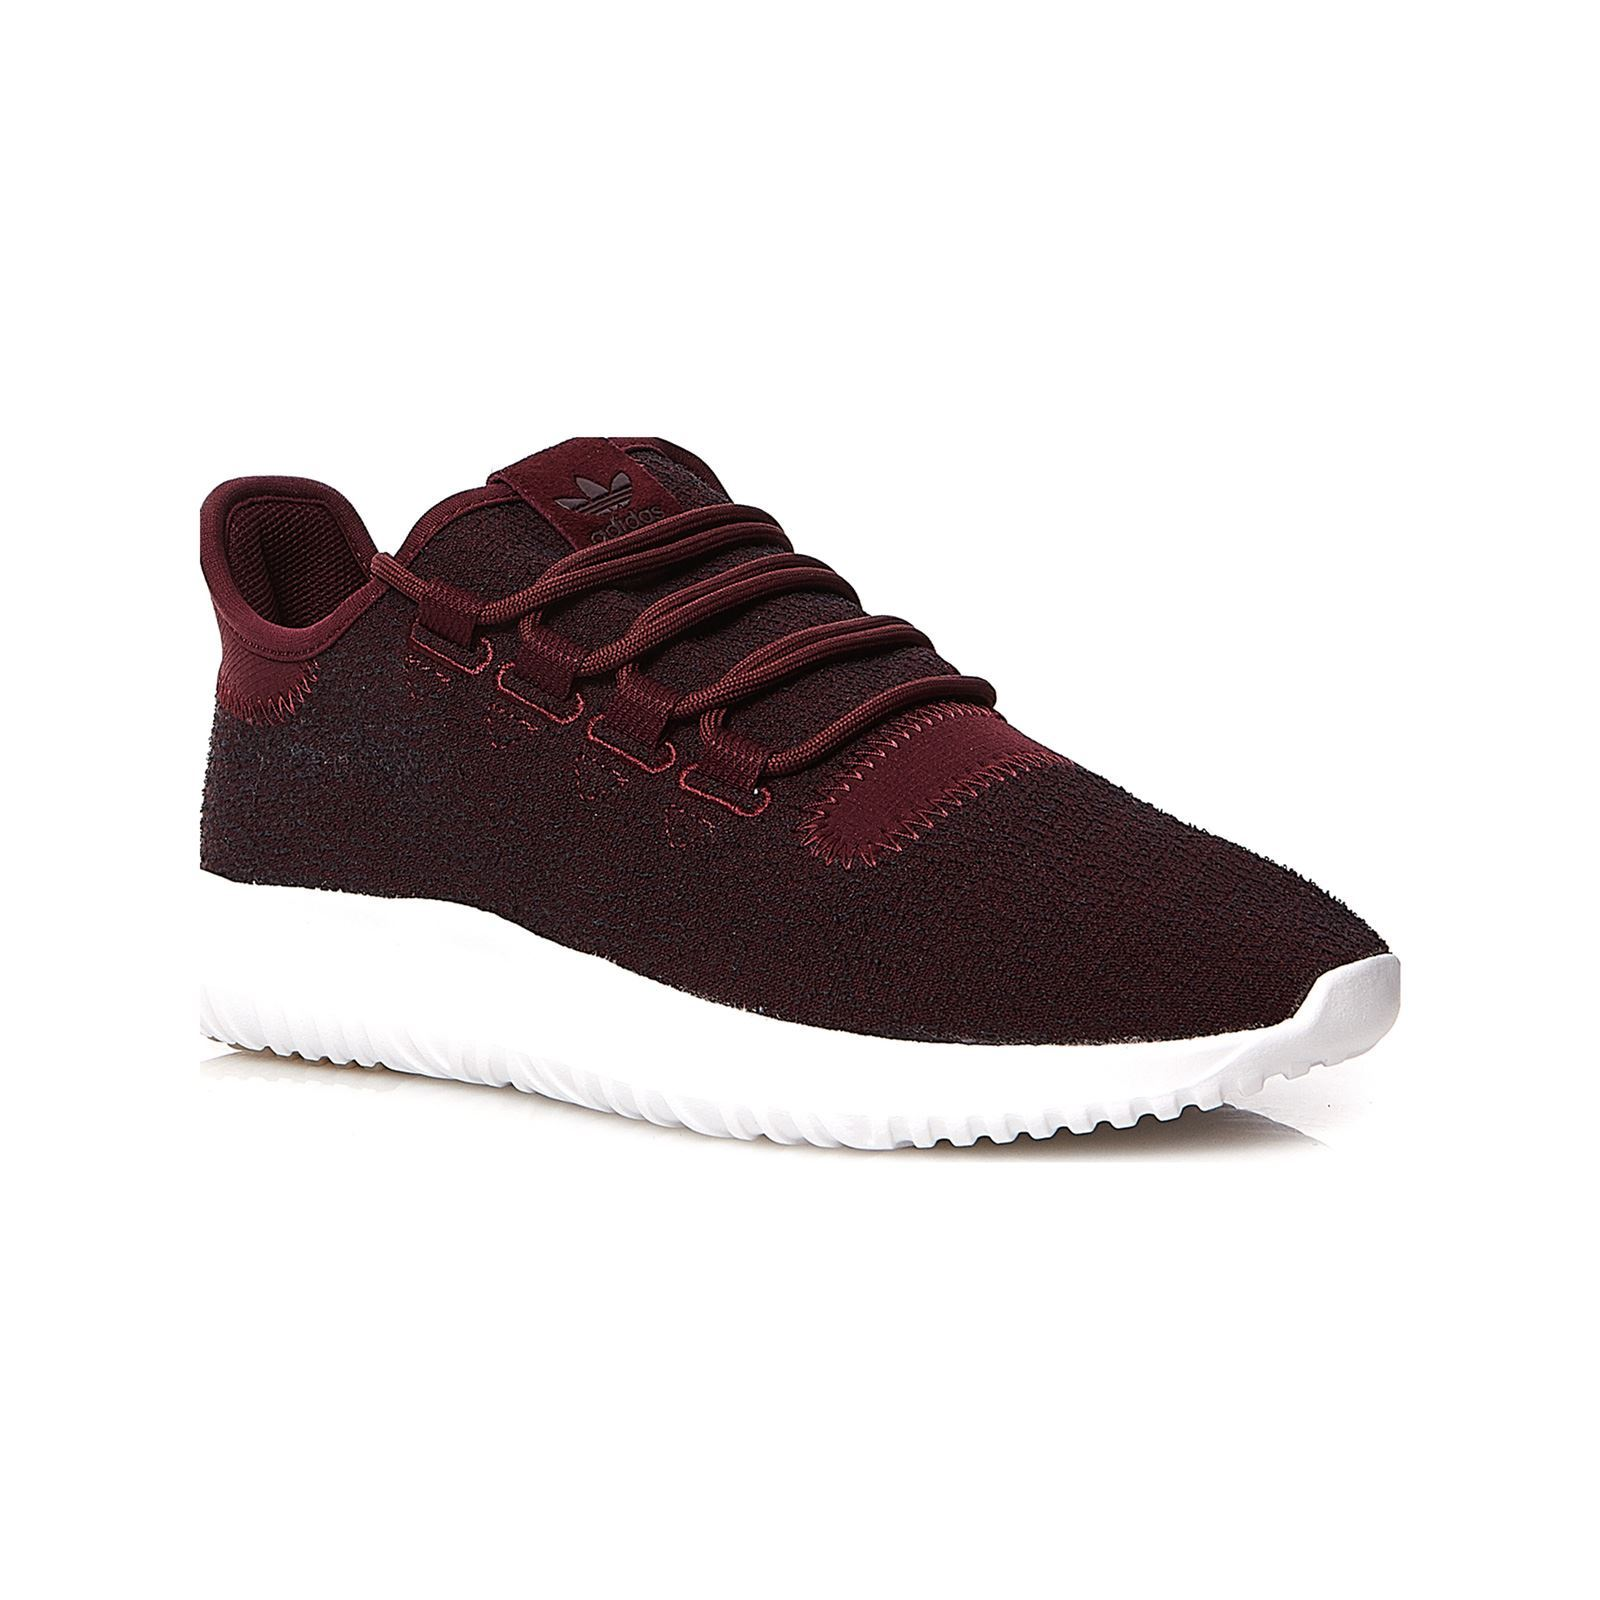 e23946a396f27 adidas Originals Zapatillas - burdeos